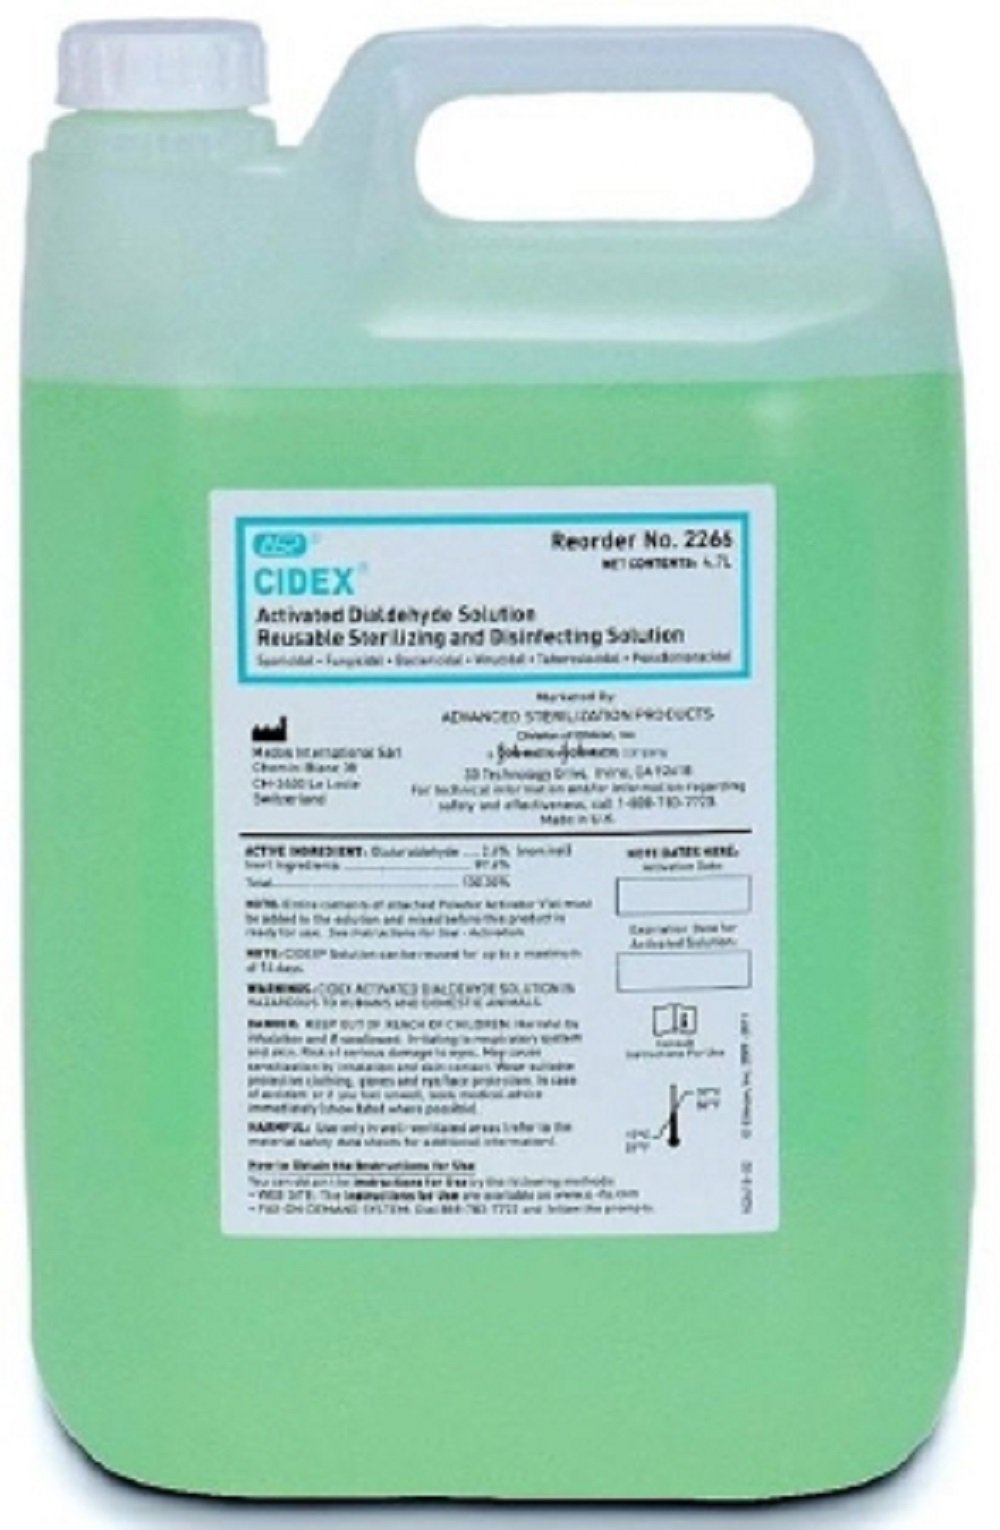 Cidex, Dialdehyde, High Level Disinfectant, Activation Required, 4.7 L Container, Max 14 Day Reuse, Characteristic Scent